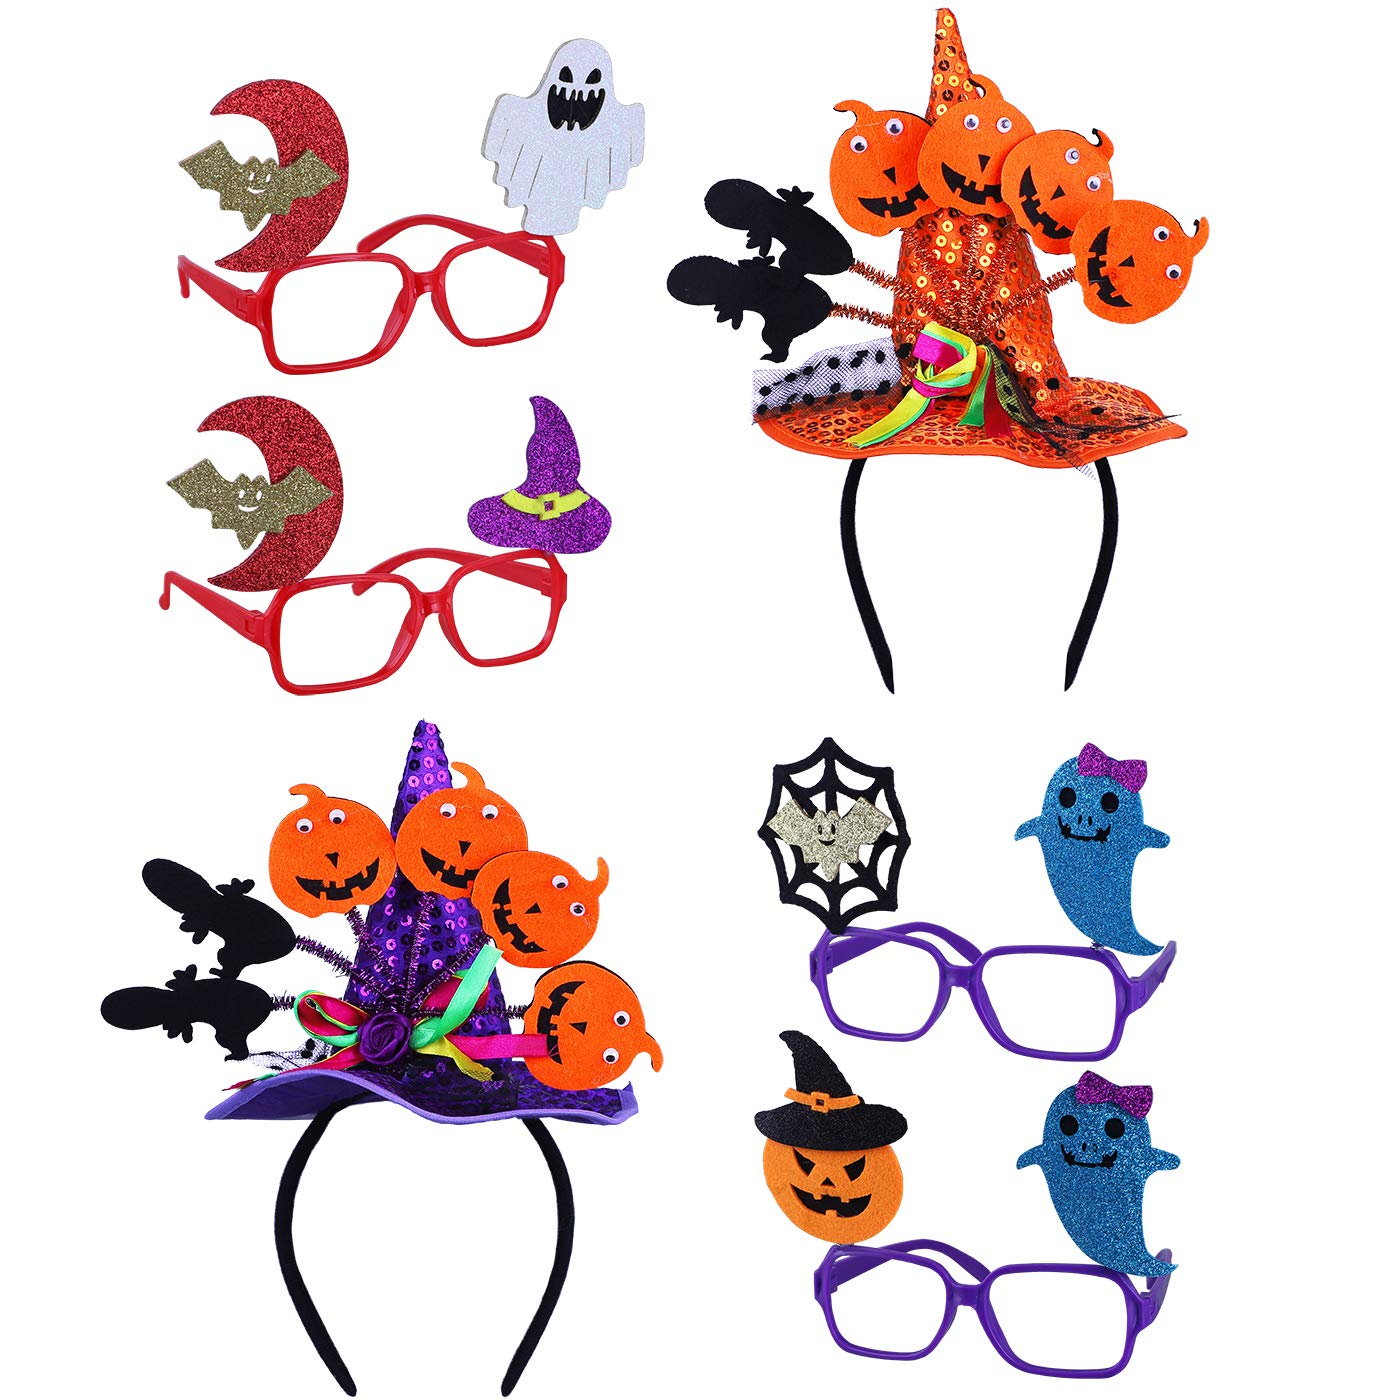 Antner 4pcs Halloween Glasses and 2pcs Halloween Witch Hat Headbands Set - Halloween Party Supplies Fancy Cosplay Costume by Antner